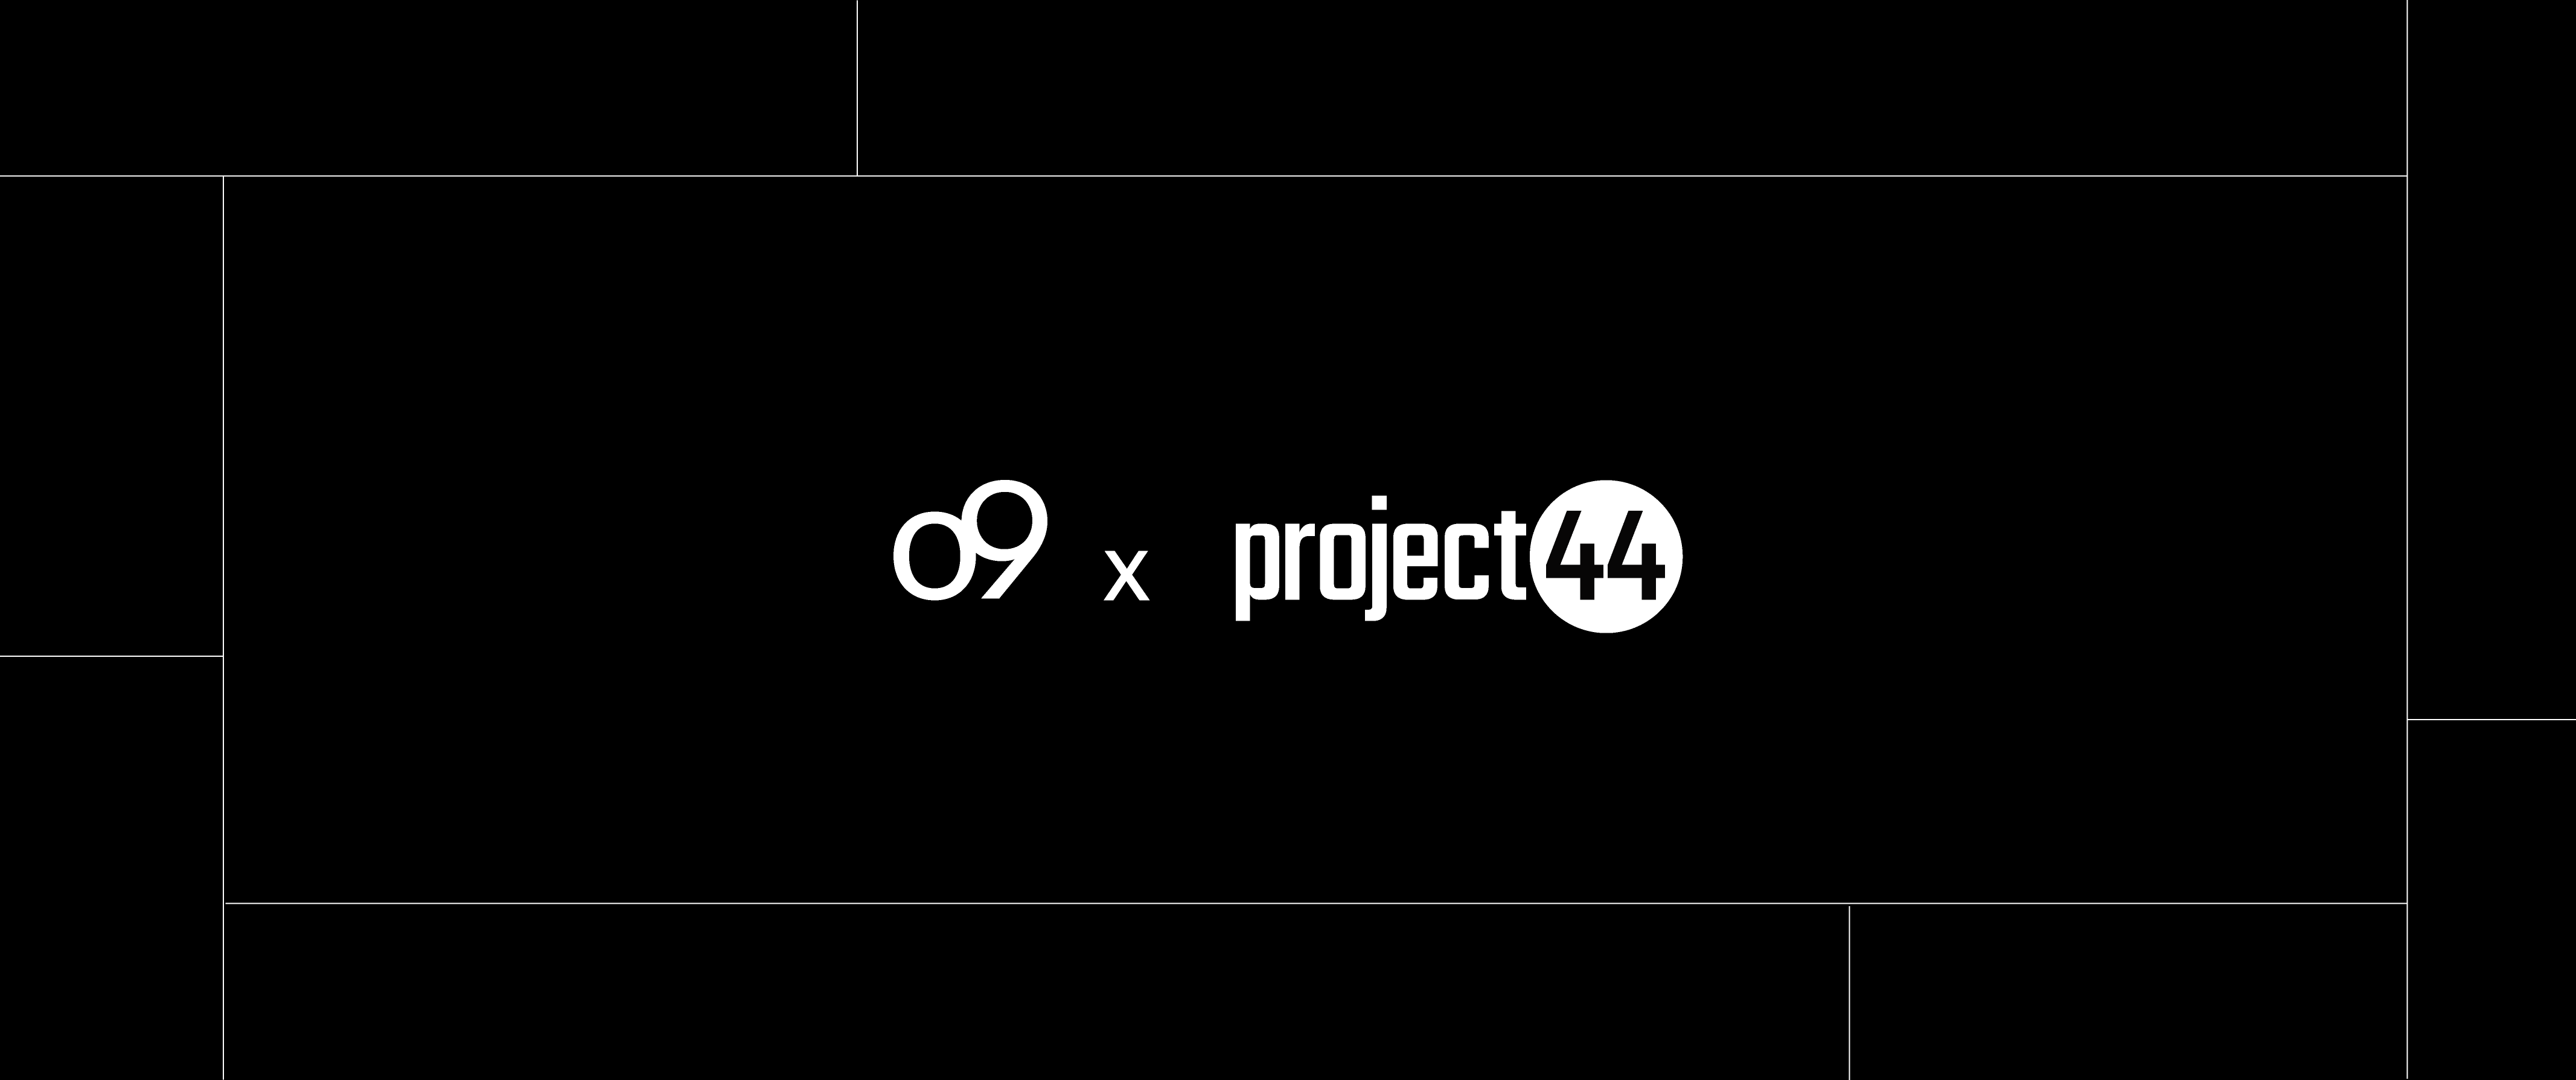 :o9 Solutions and project44 partner to eliminate friction in complex global supply chains